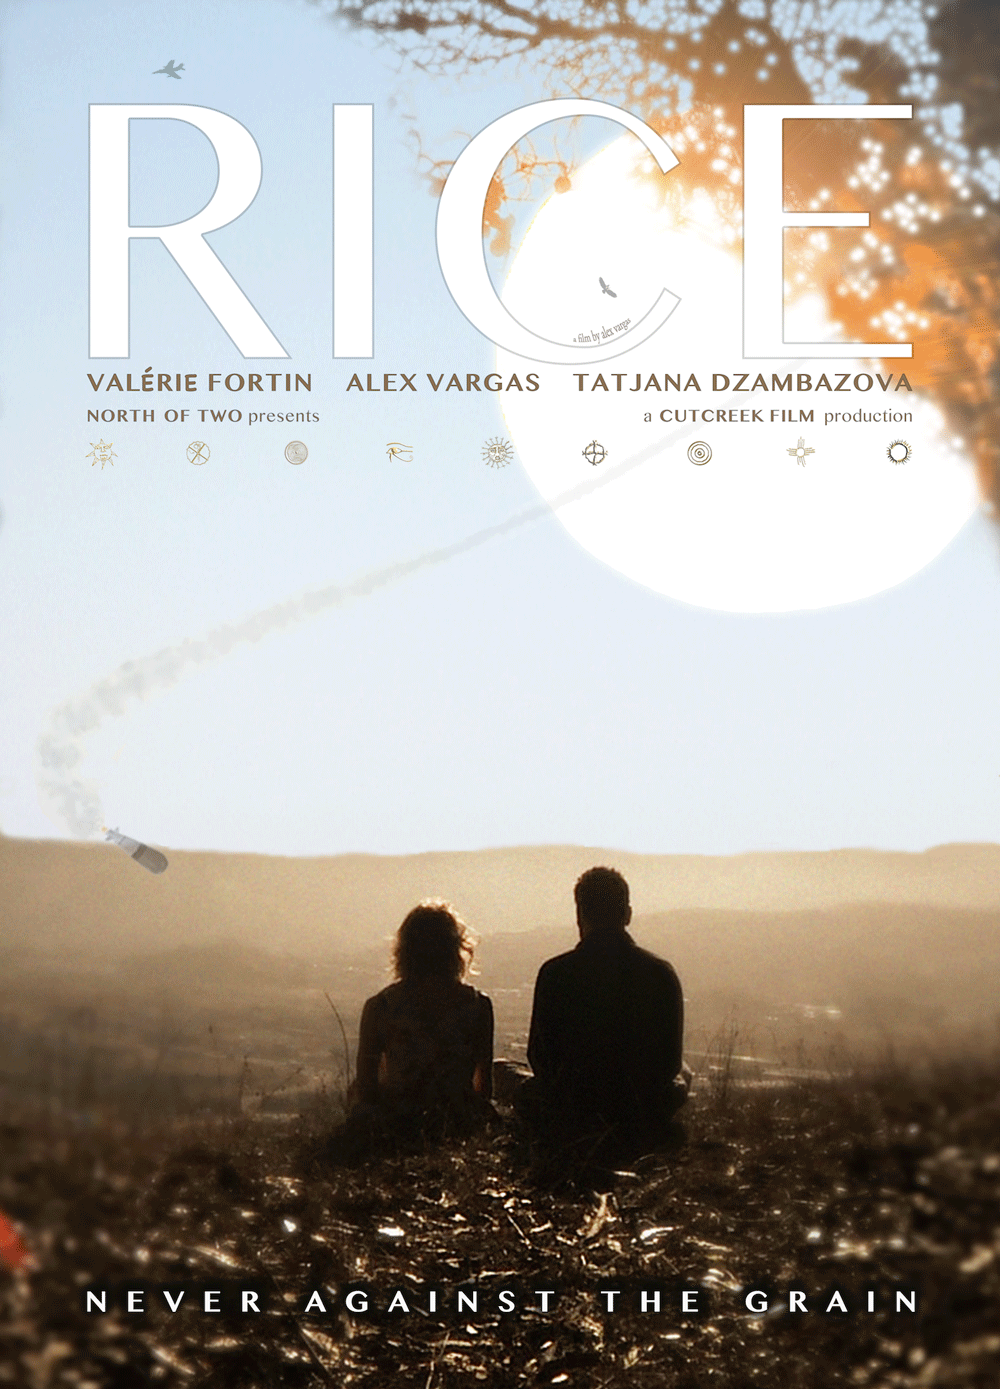 RICE the movie